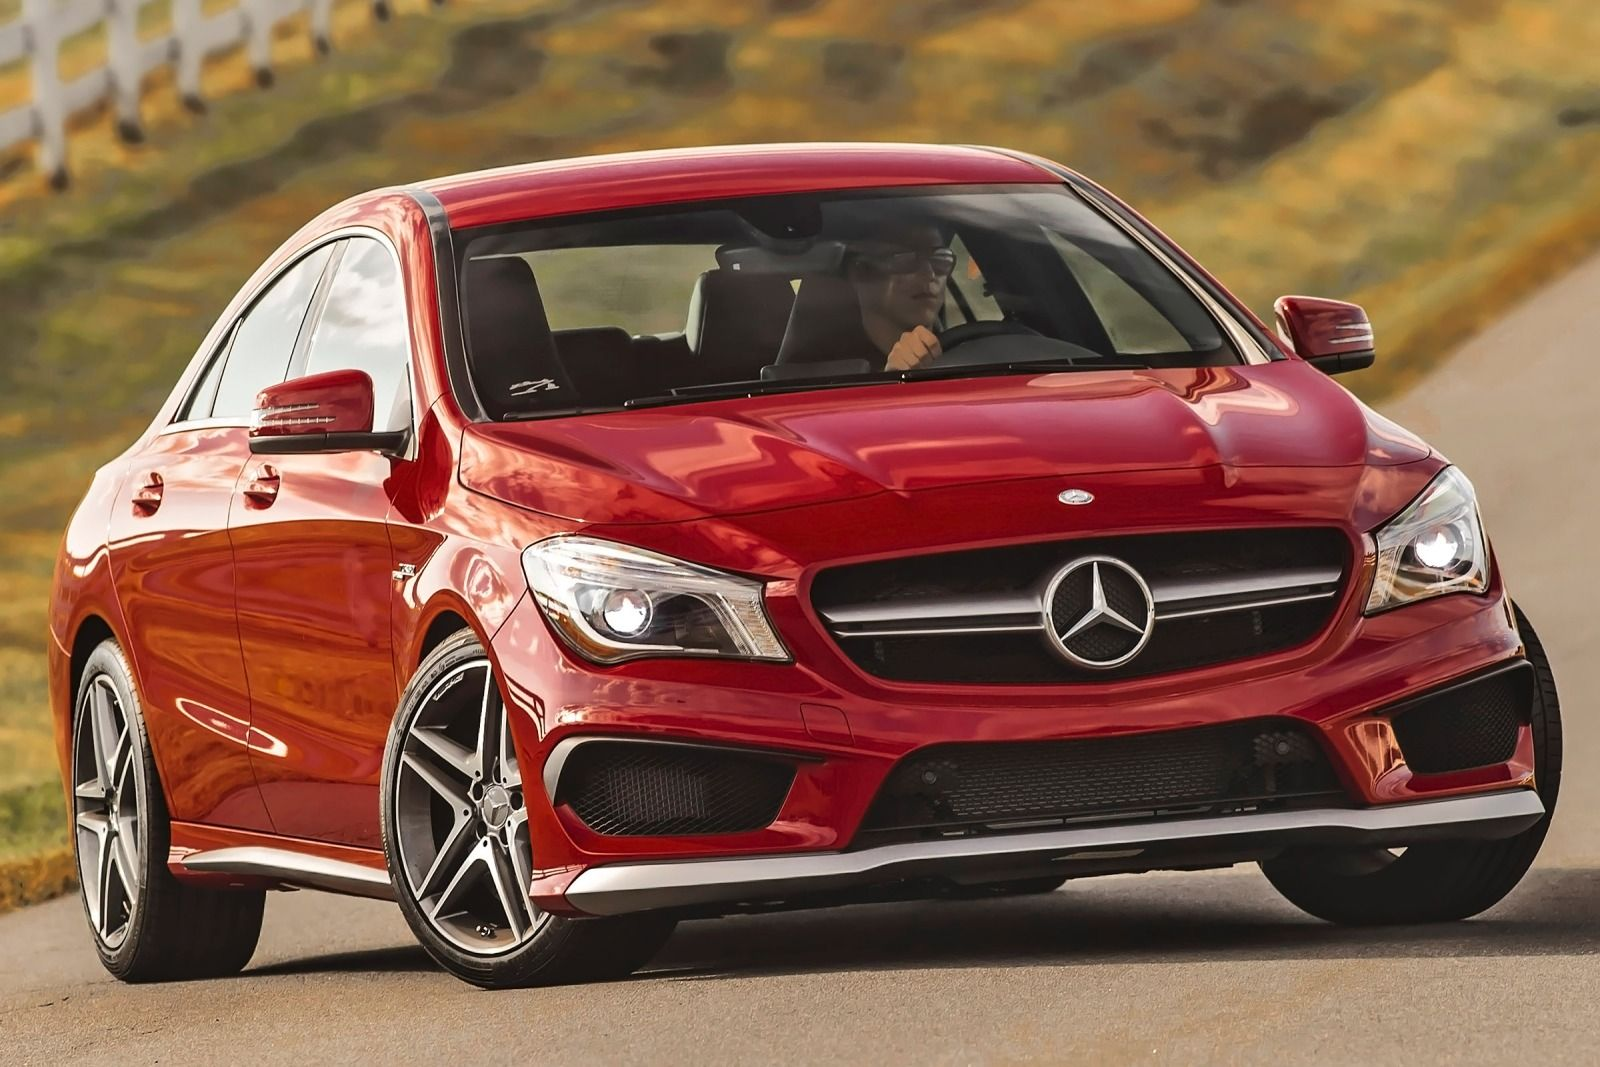 2015 Mercedes Benz Cla Class 10 Widescreen Car Wallpaper